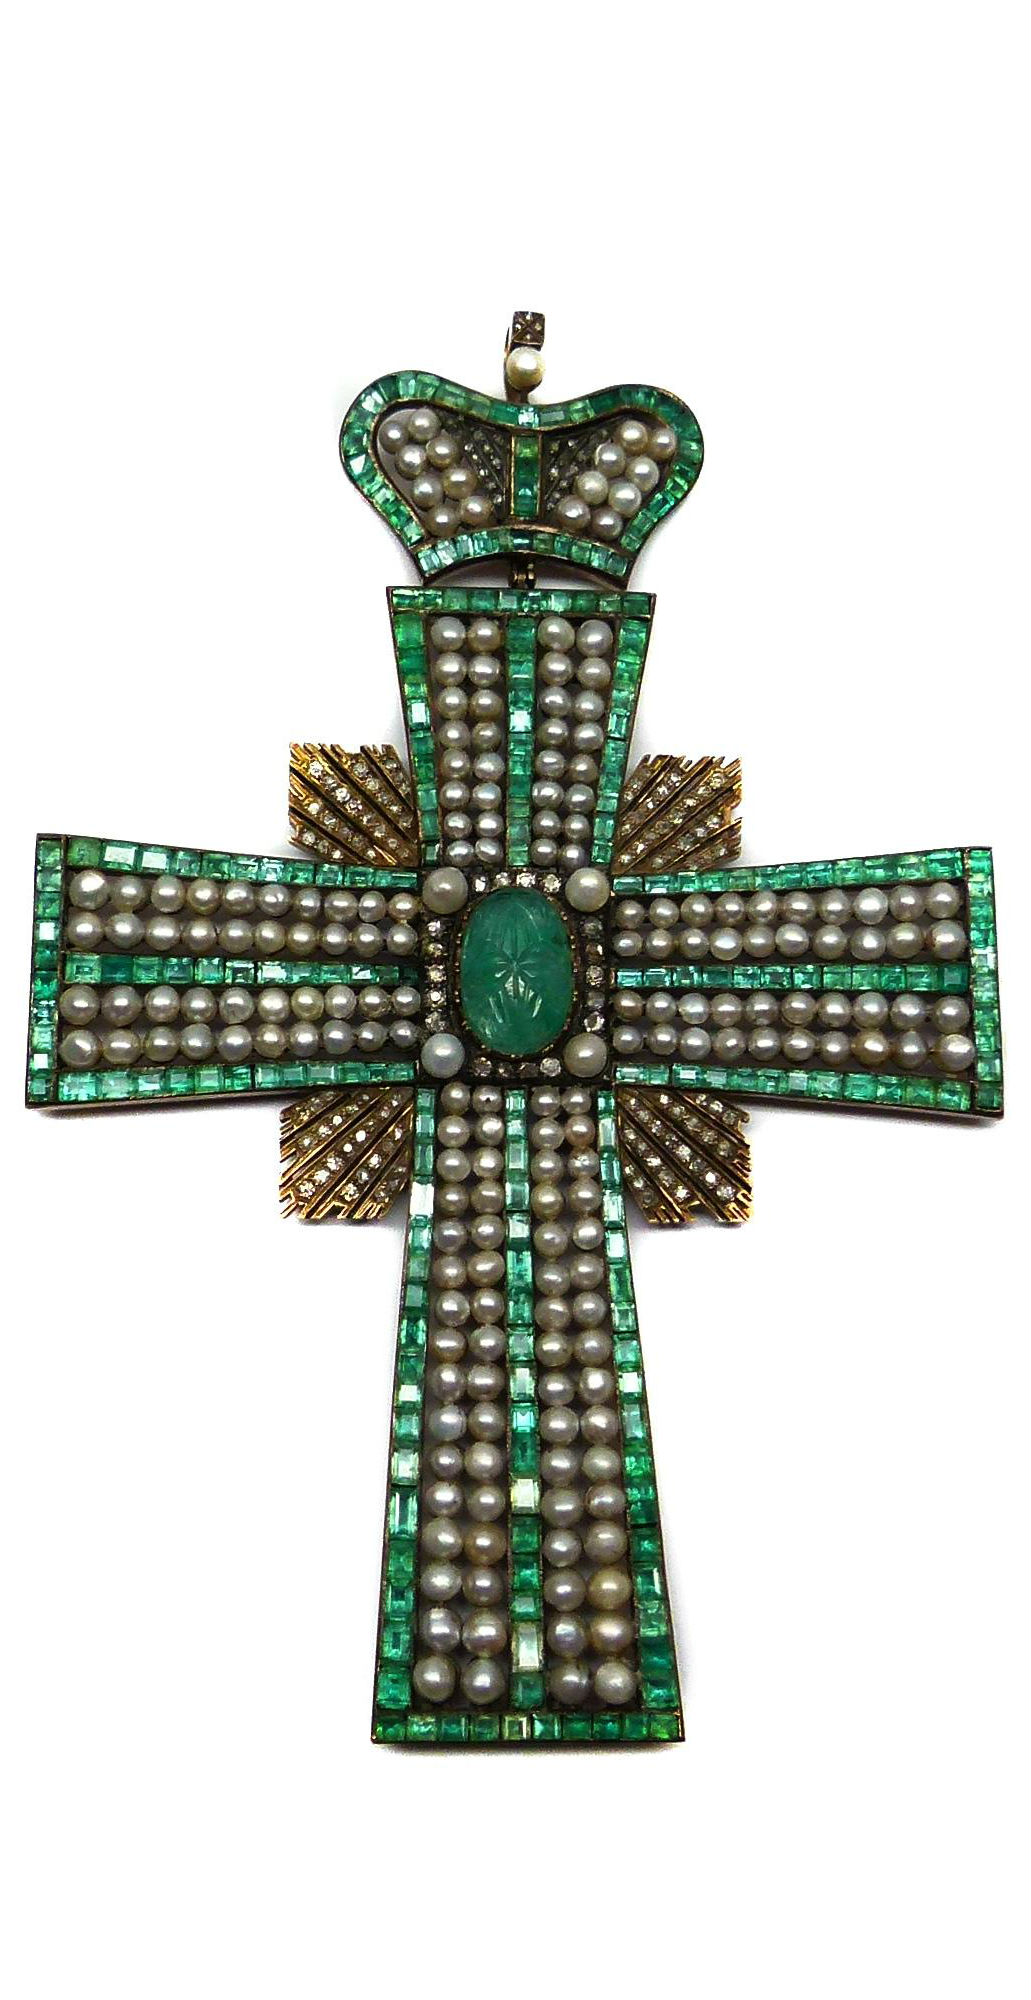 Daily jewel large 19th century emerald pearl and diamond cross large 19th century emerald pearl and diamond cross pendant with coronet surmount russian c1850 mozeypictures